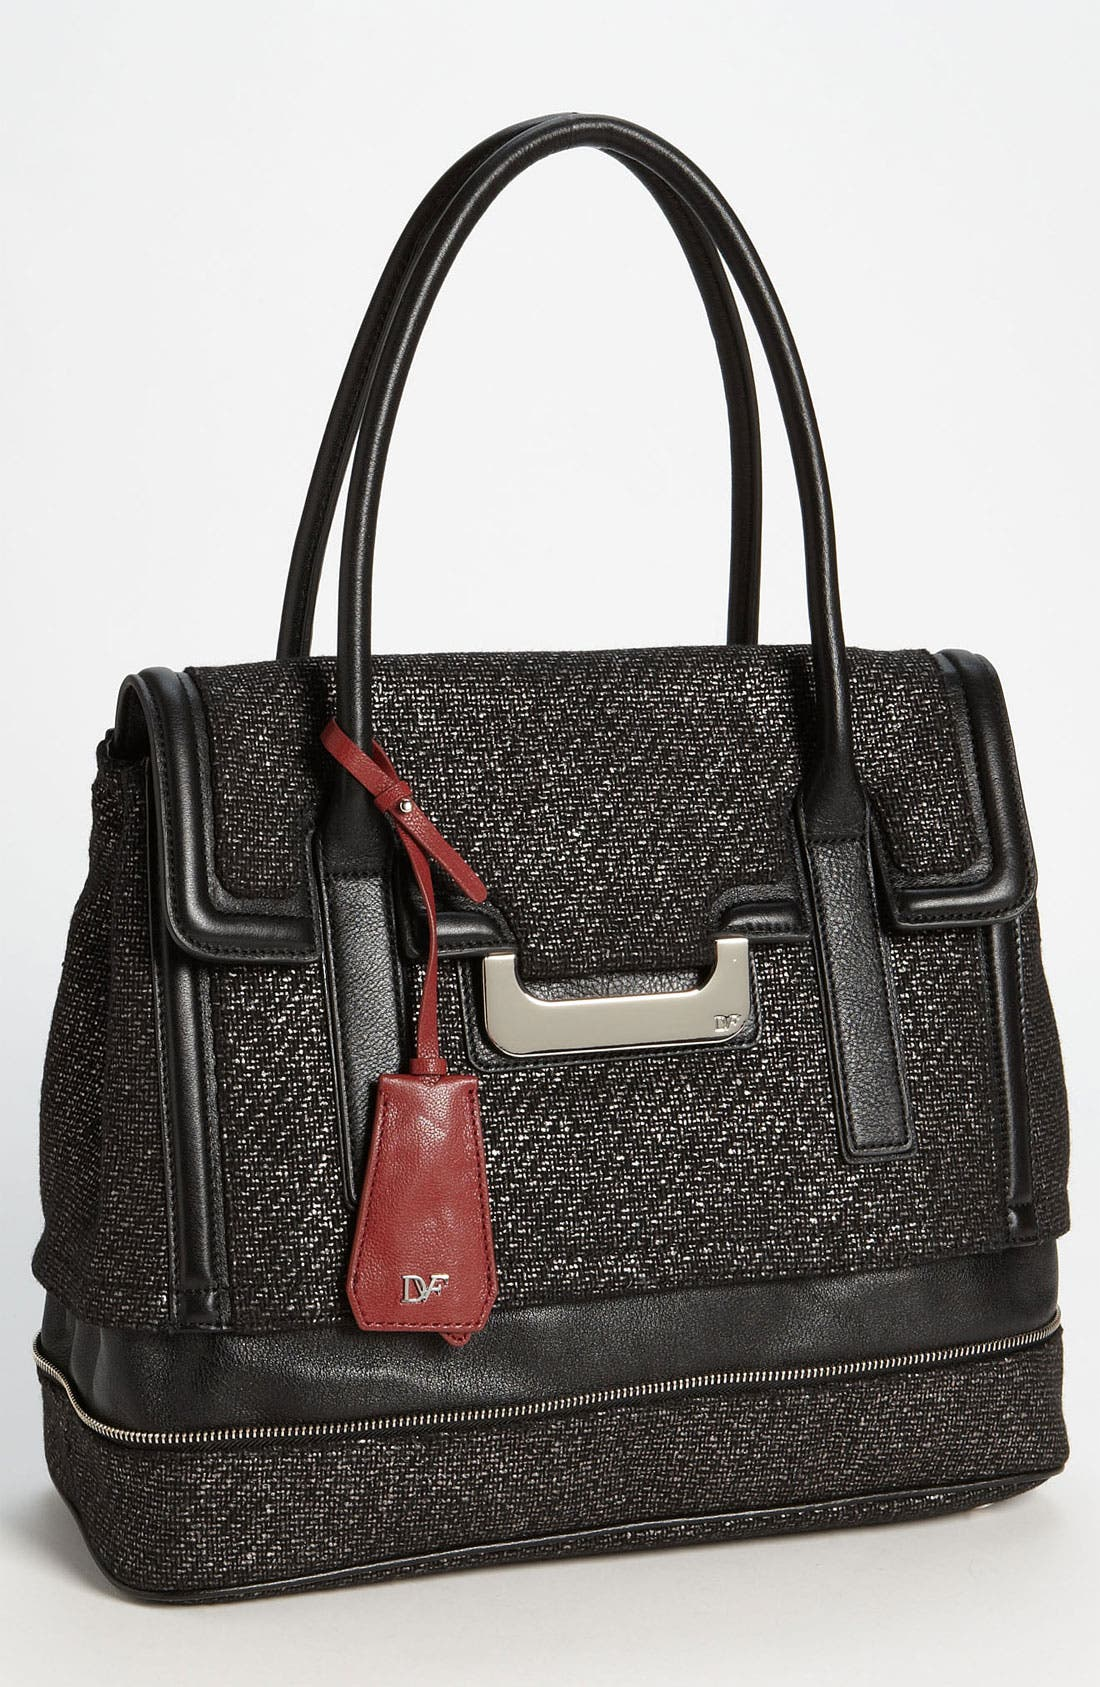 Alternate Image 1 Selected - Diane von Furstenberg 'New Harper - Laurel' Tweed Shoulder Bag